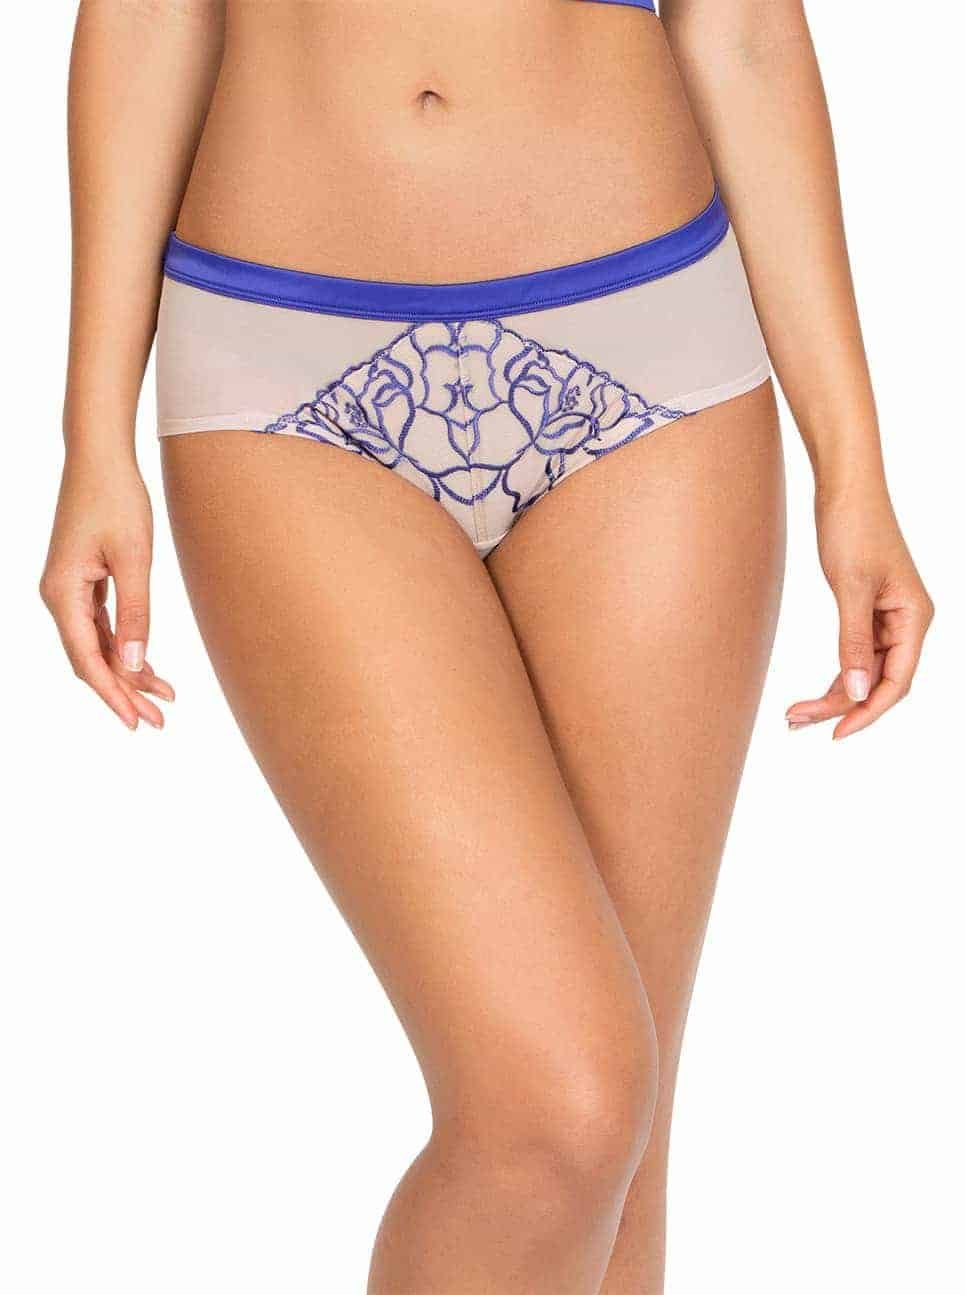 Tattoo_HipsterA1435_Clematis-Blue-Champagne_front